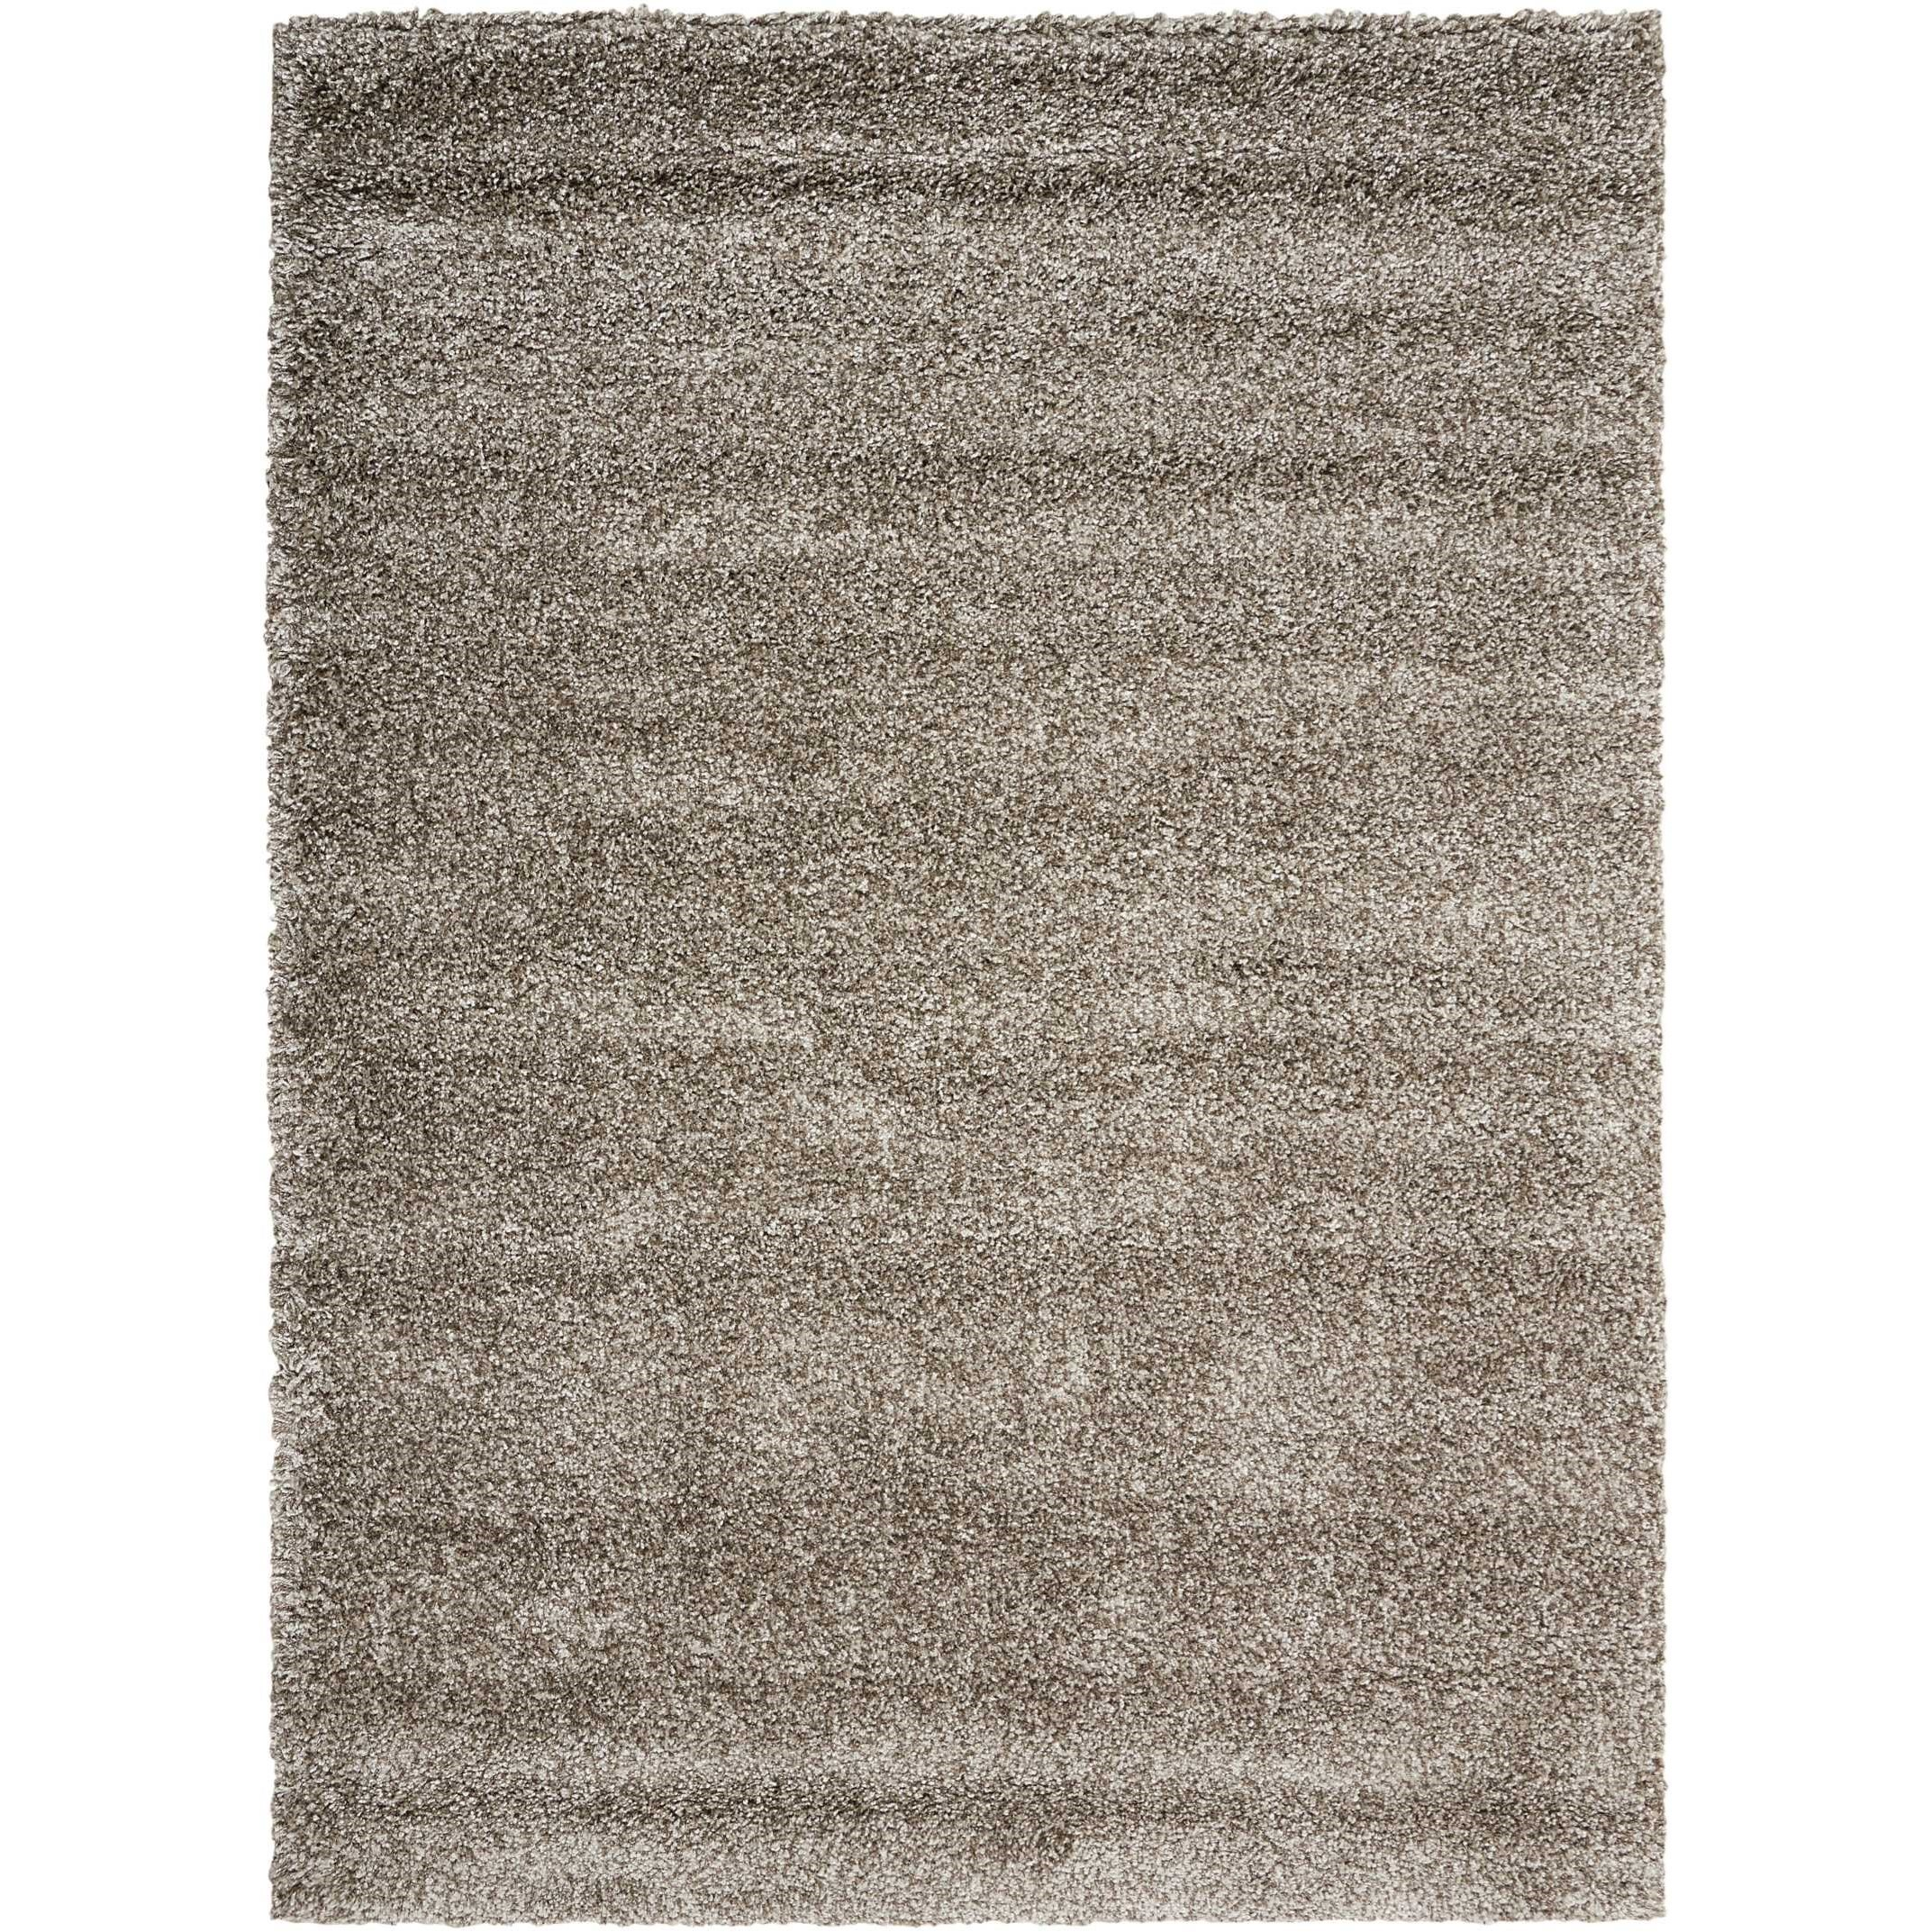 "Amore 3'11"" x 5'11"" Stone Rectangle Rug by Nourison at Home Collections Furniture"